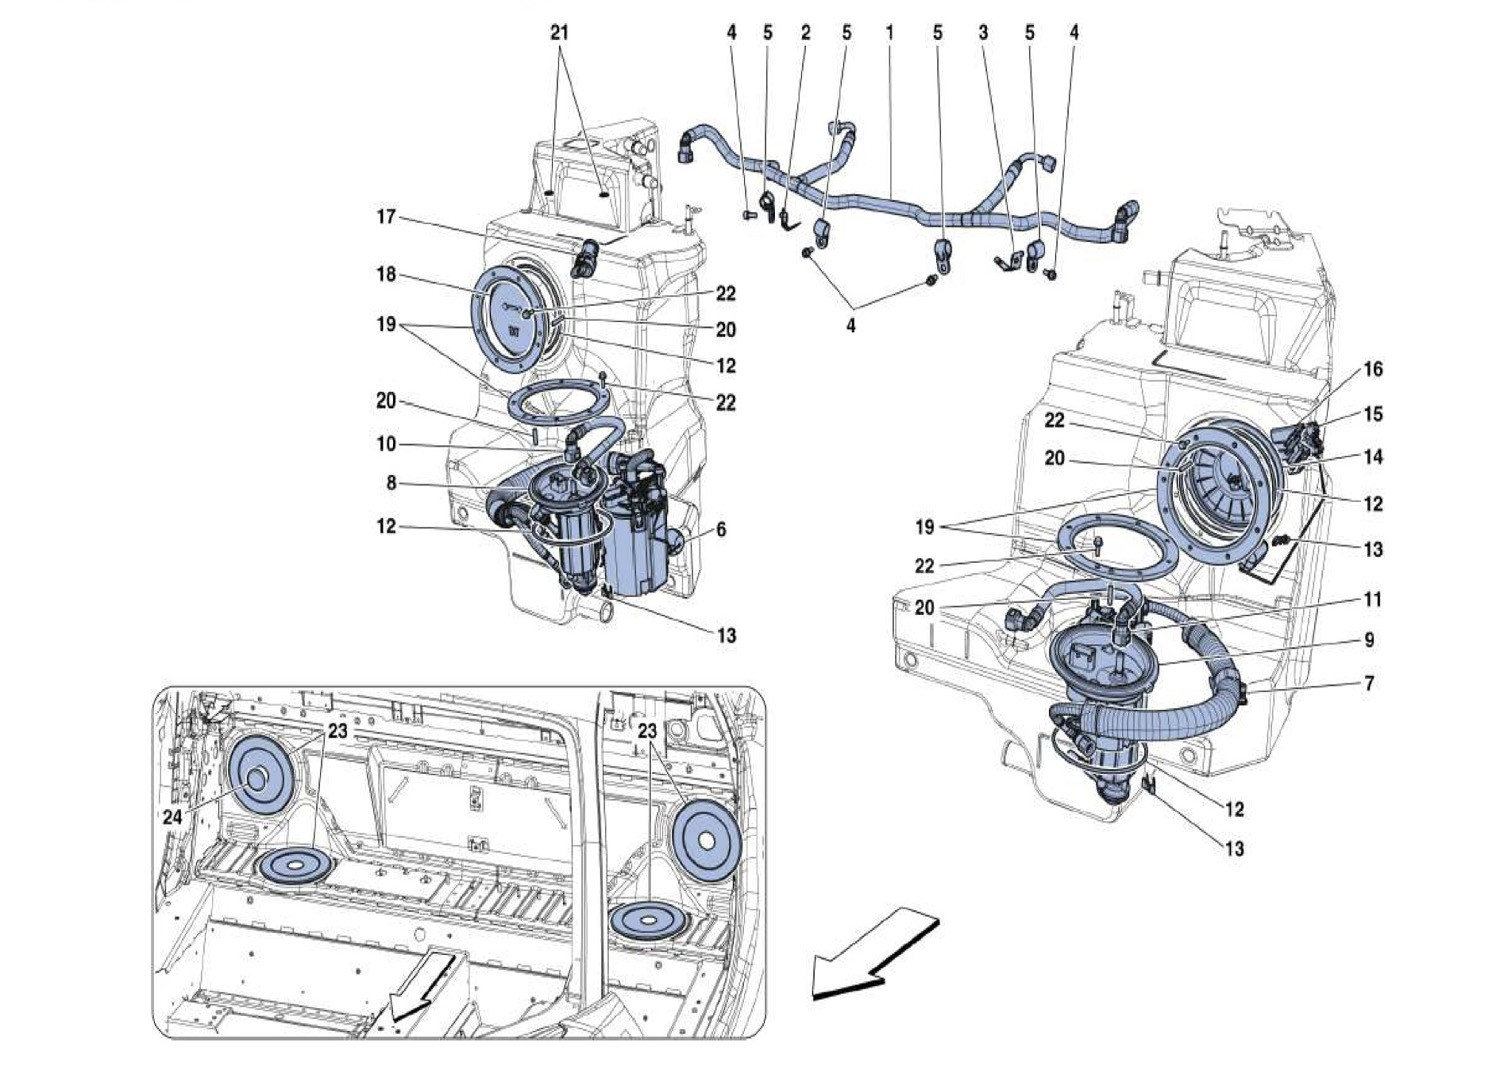 FUEL SYSTEM PUMPS AND PIPES